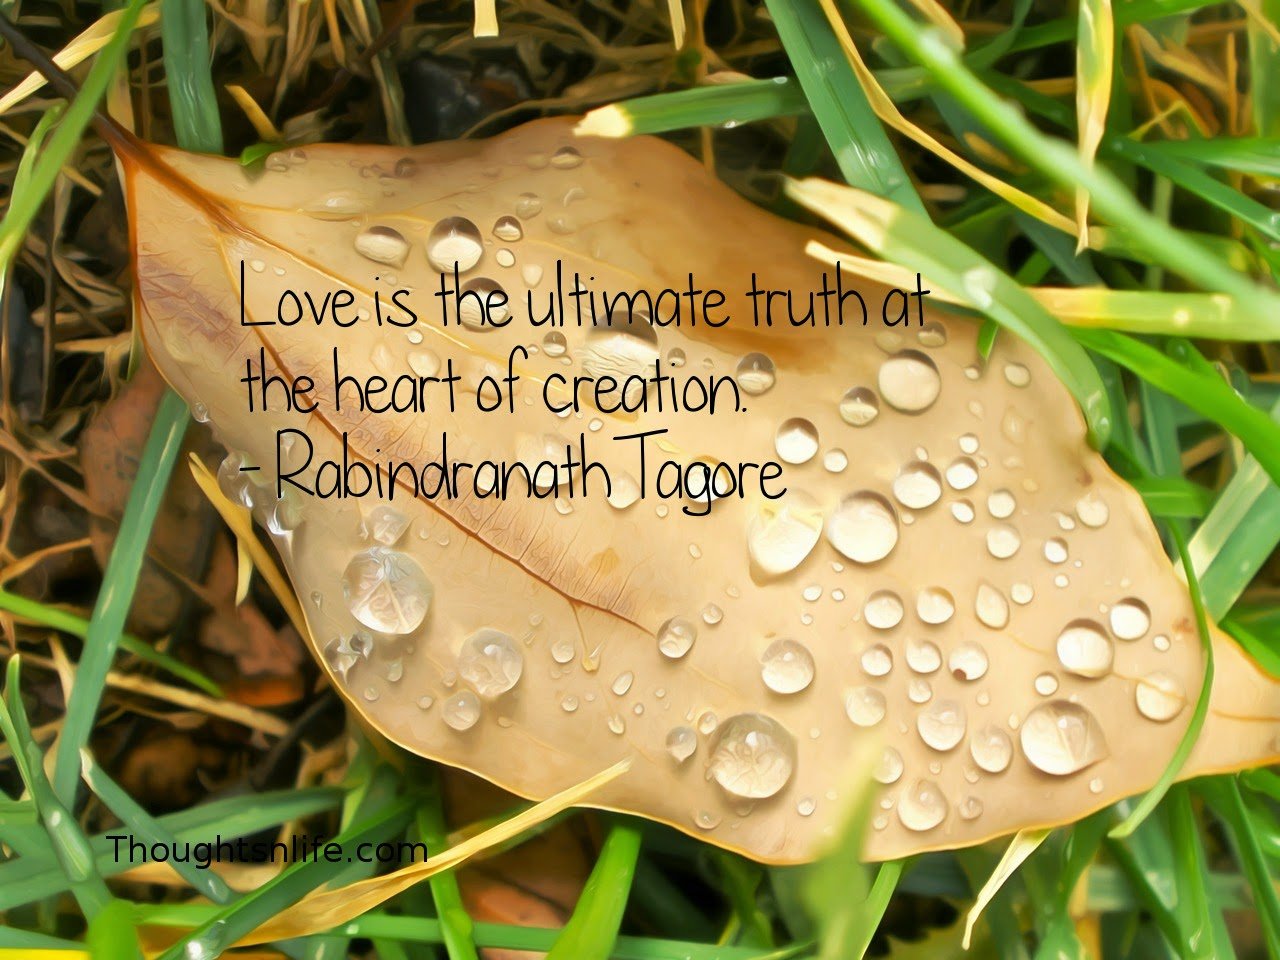 Thoughtsnlife.com: Love is the ultimate truth at the heart of creation. - Rabindranath Tagore